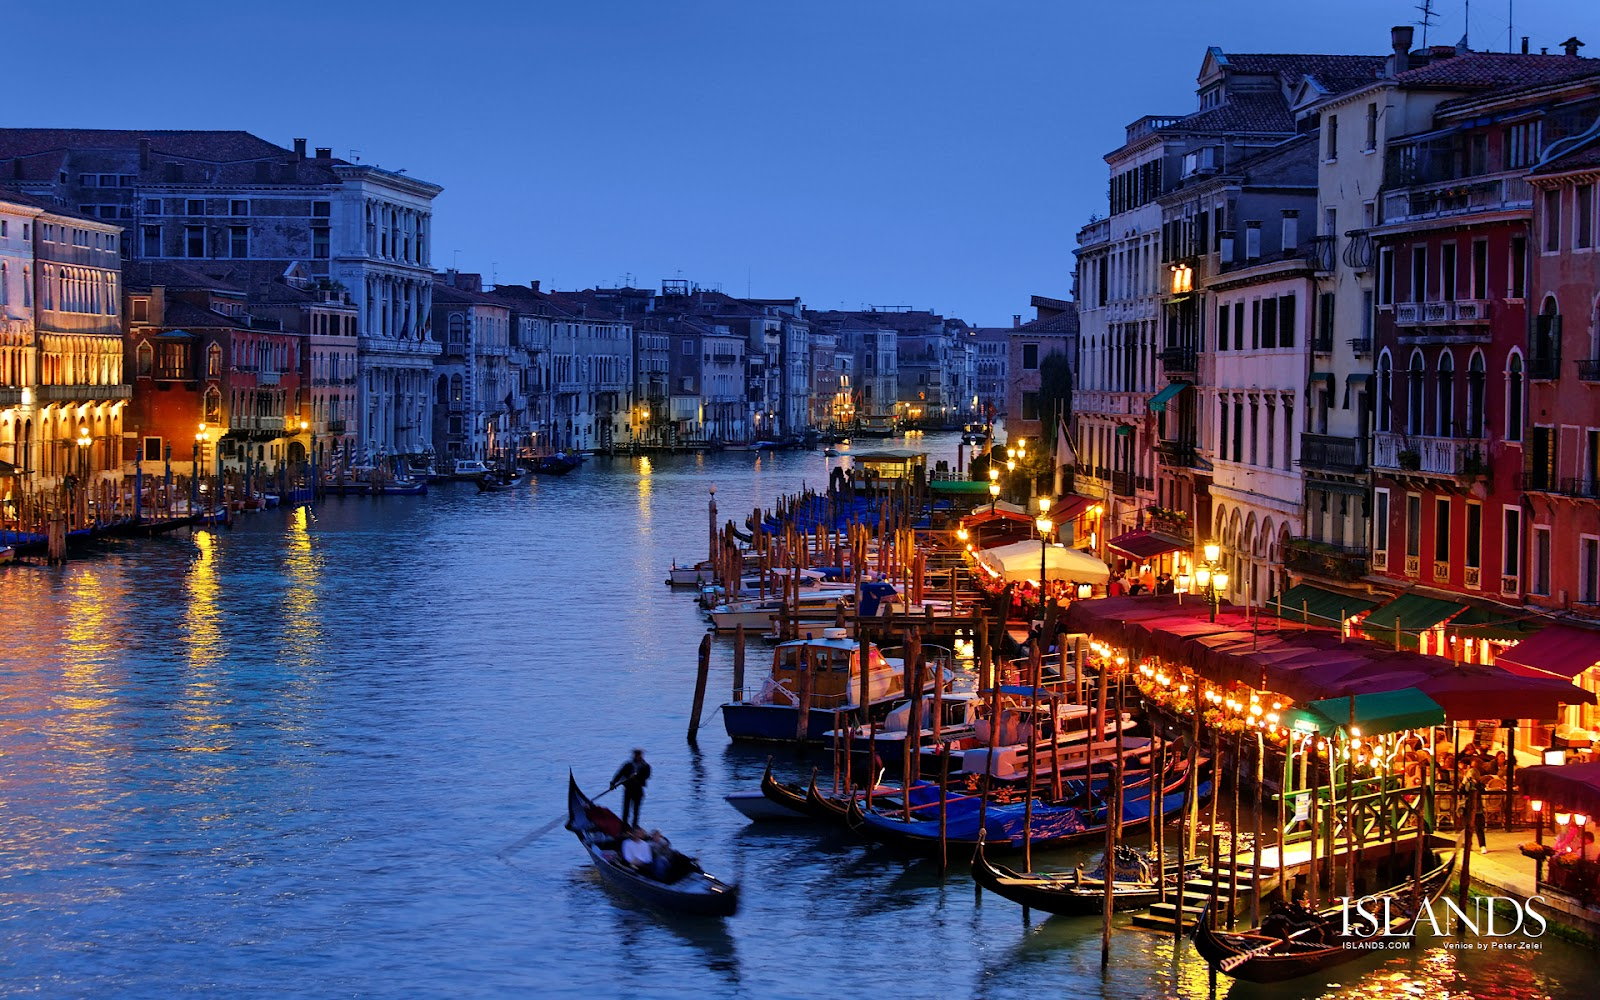 Free Full Hd Wallpaper Venice Of The Most Beautiful Italian Cities Full Hd